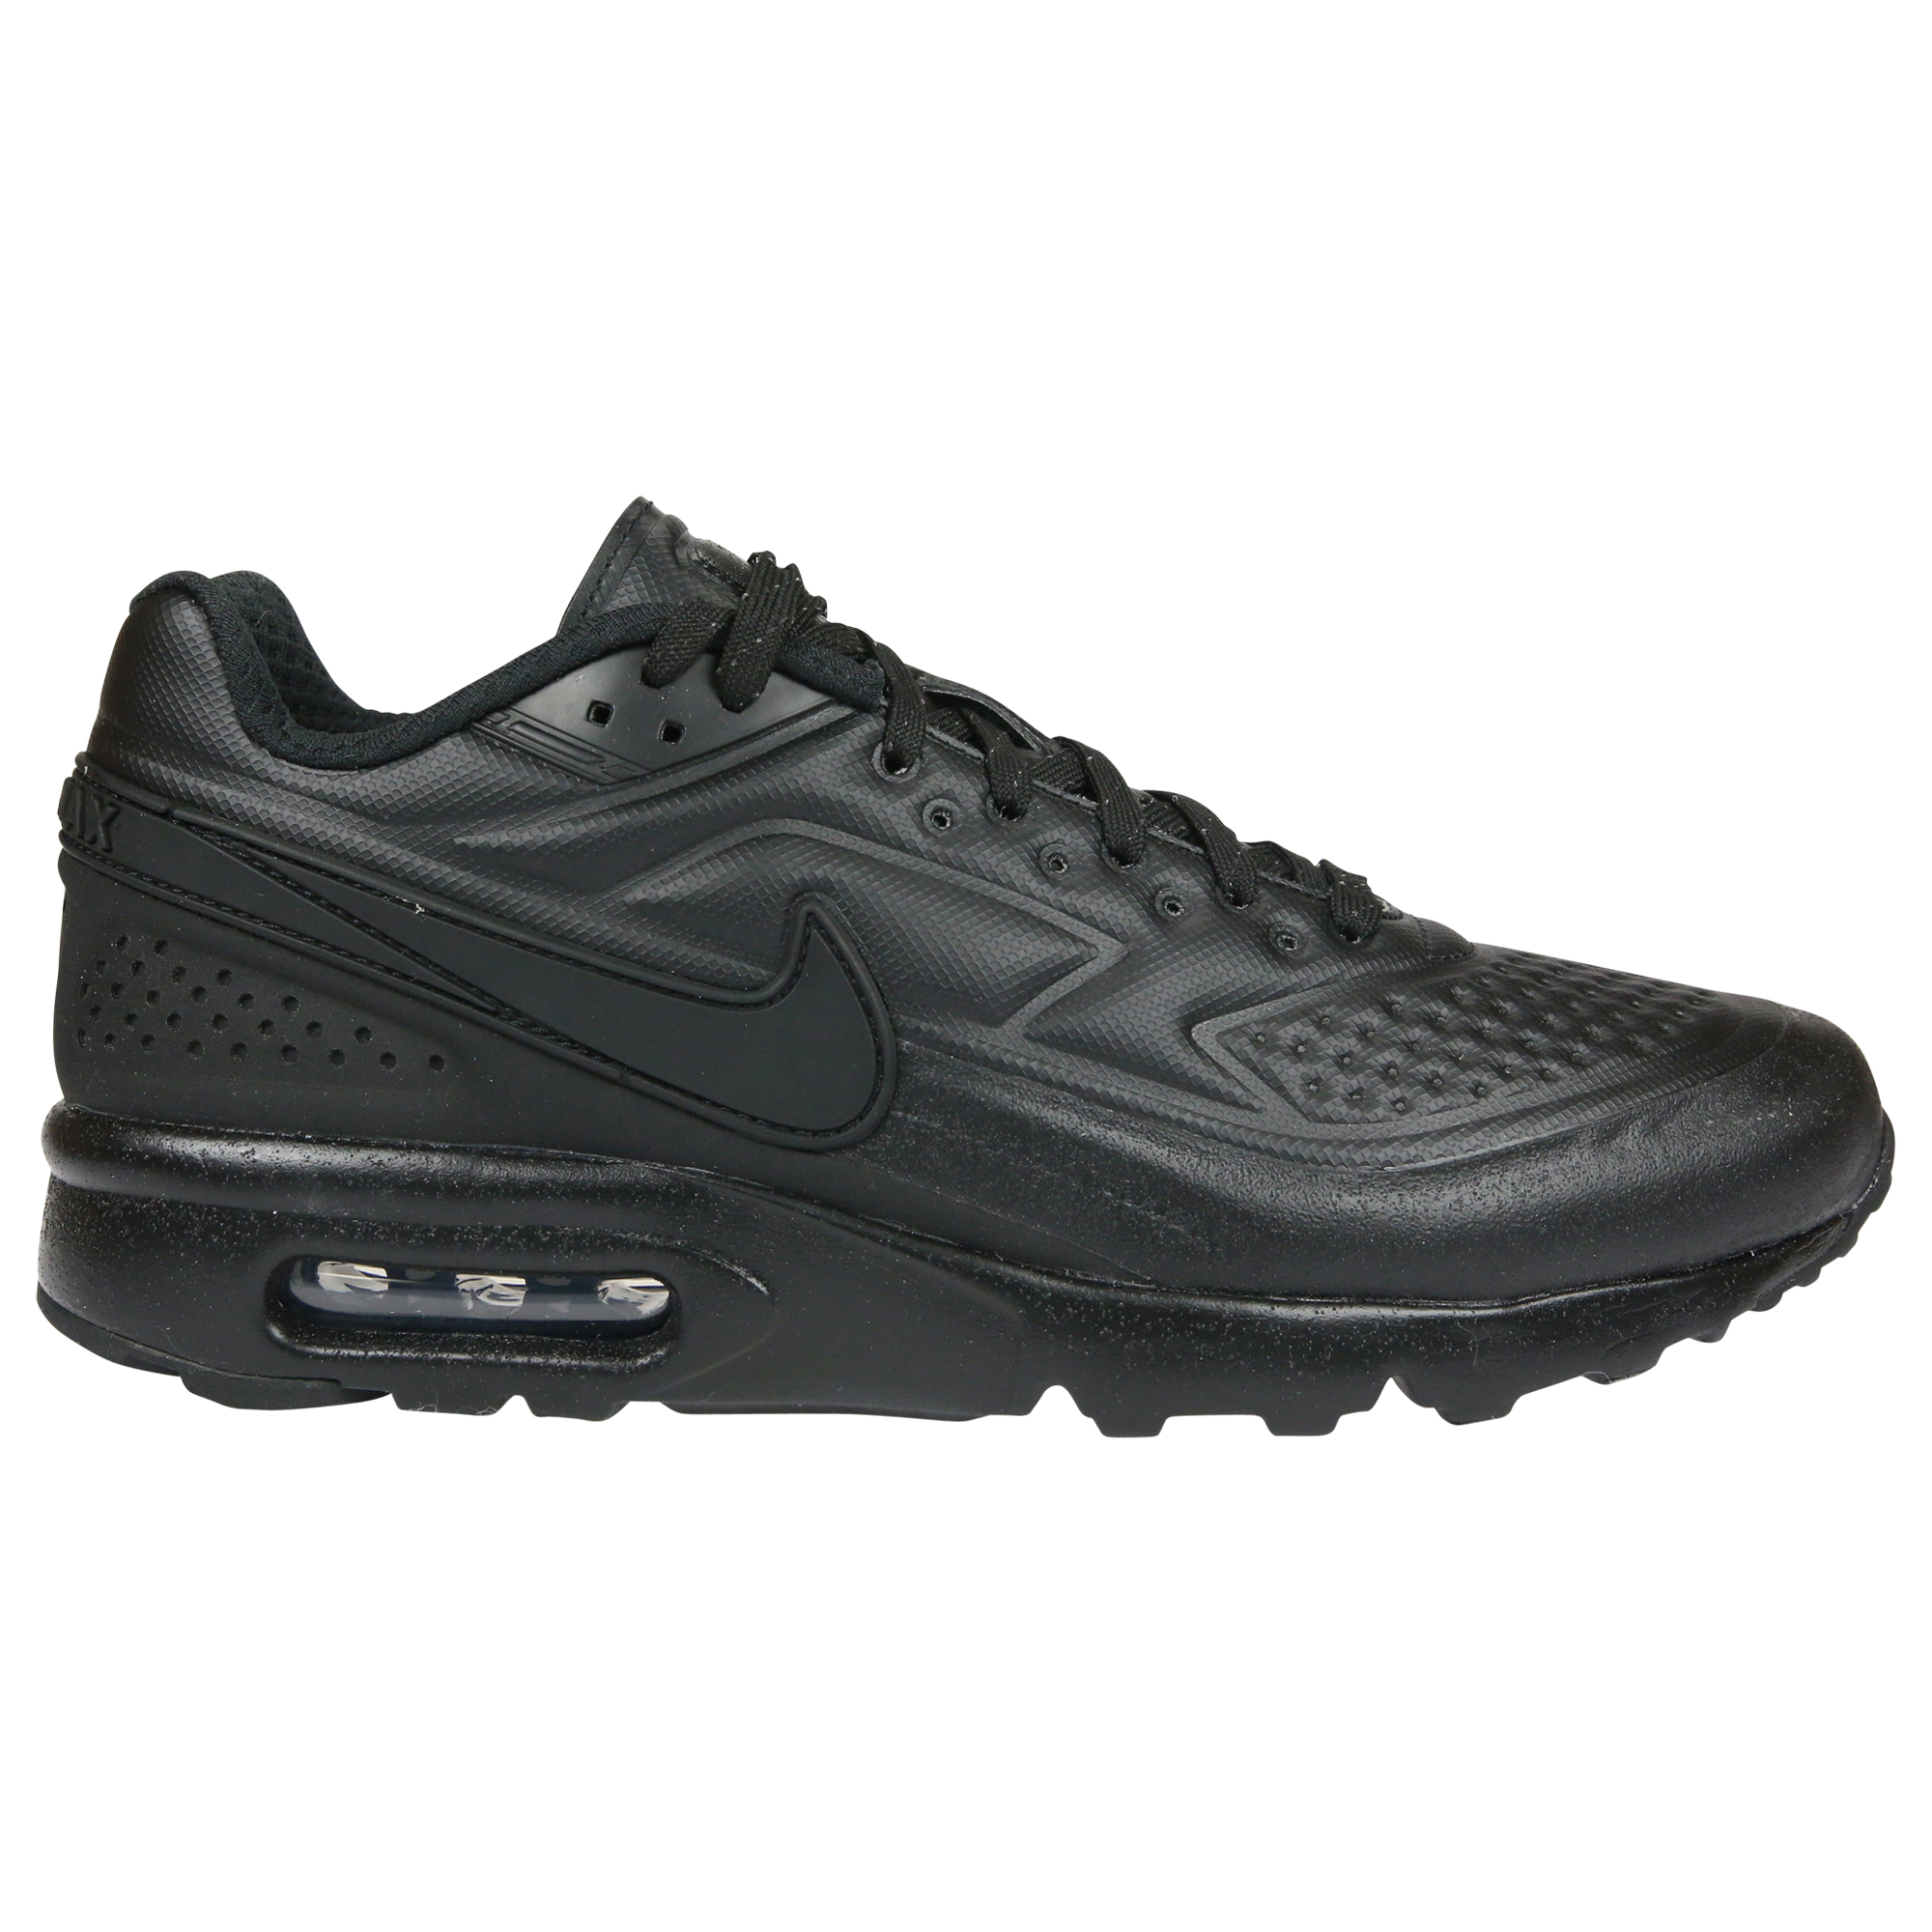 nike air max bw ultra se premium schuhe turnschuhe sneaker. Black Bedroom Furniture Sets. Home Design Ideas